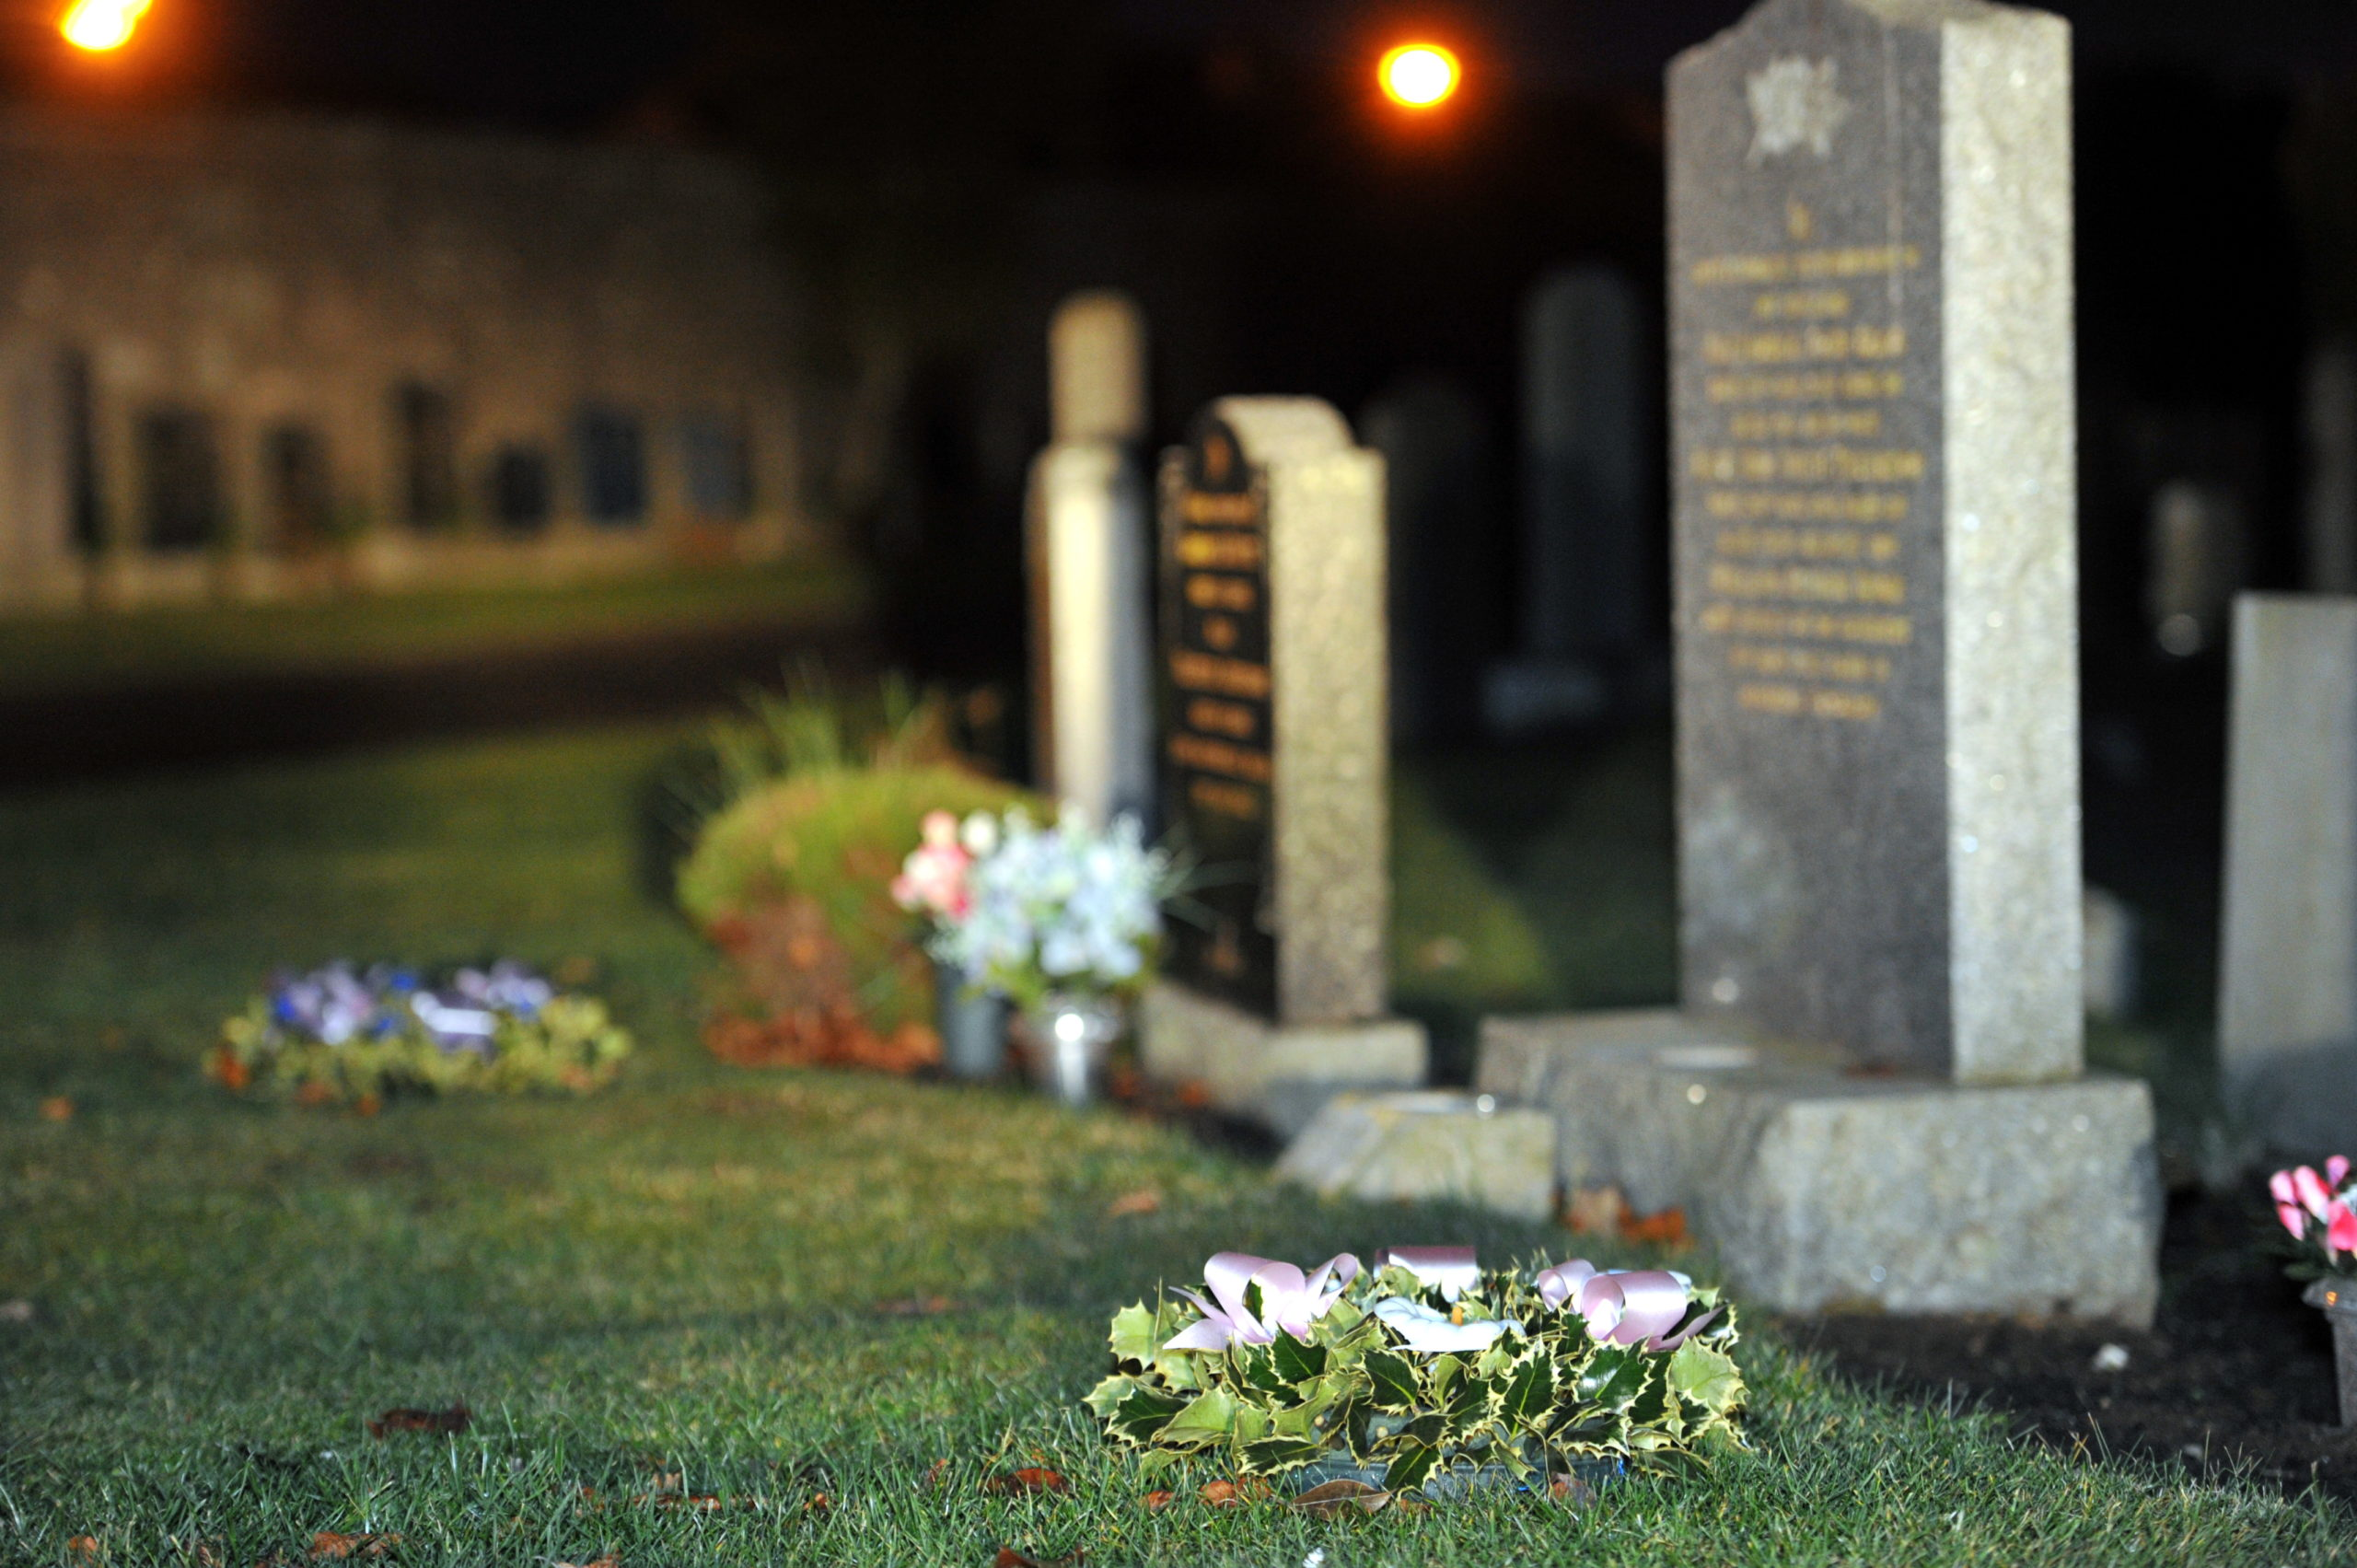 Thefts have been reported from the cemetery in Elgin.